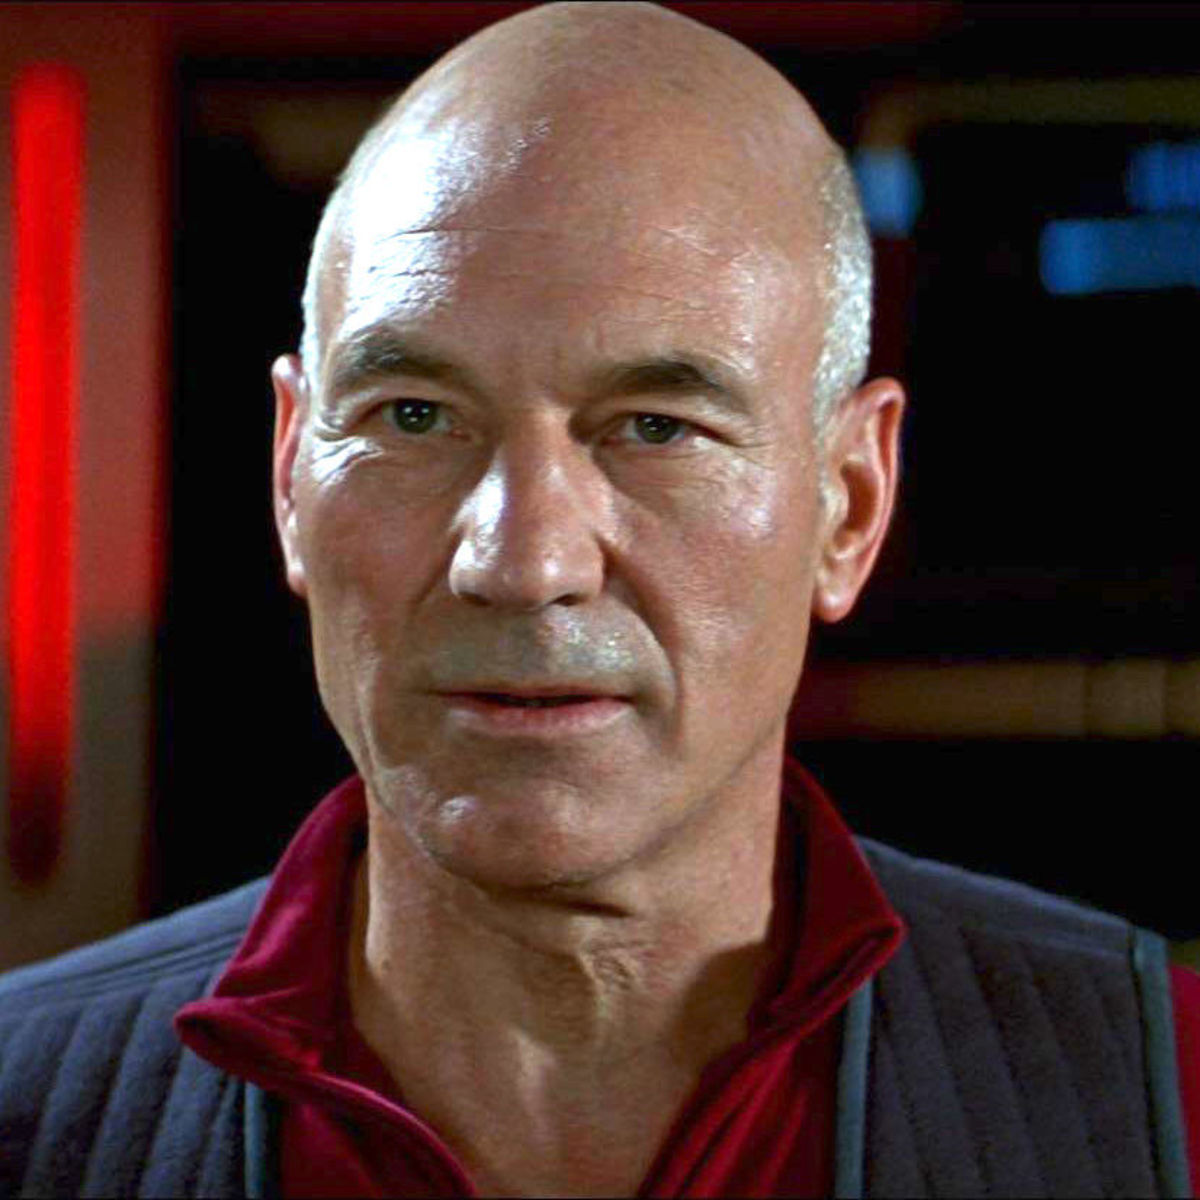 PATRICK STEWART's First STAR TREK Revival Photo